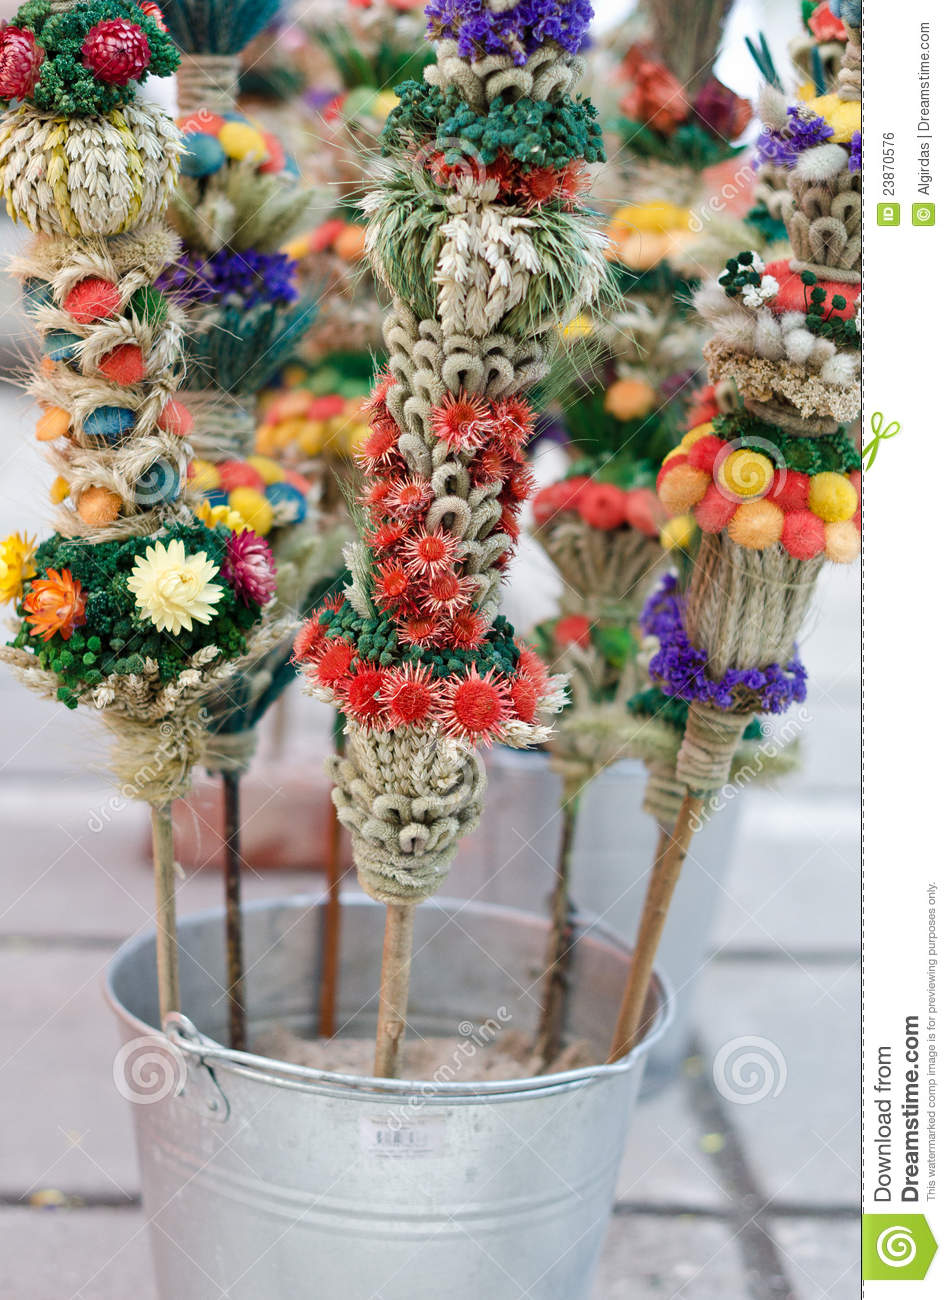 easter flower bouquets royalty free stock image